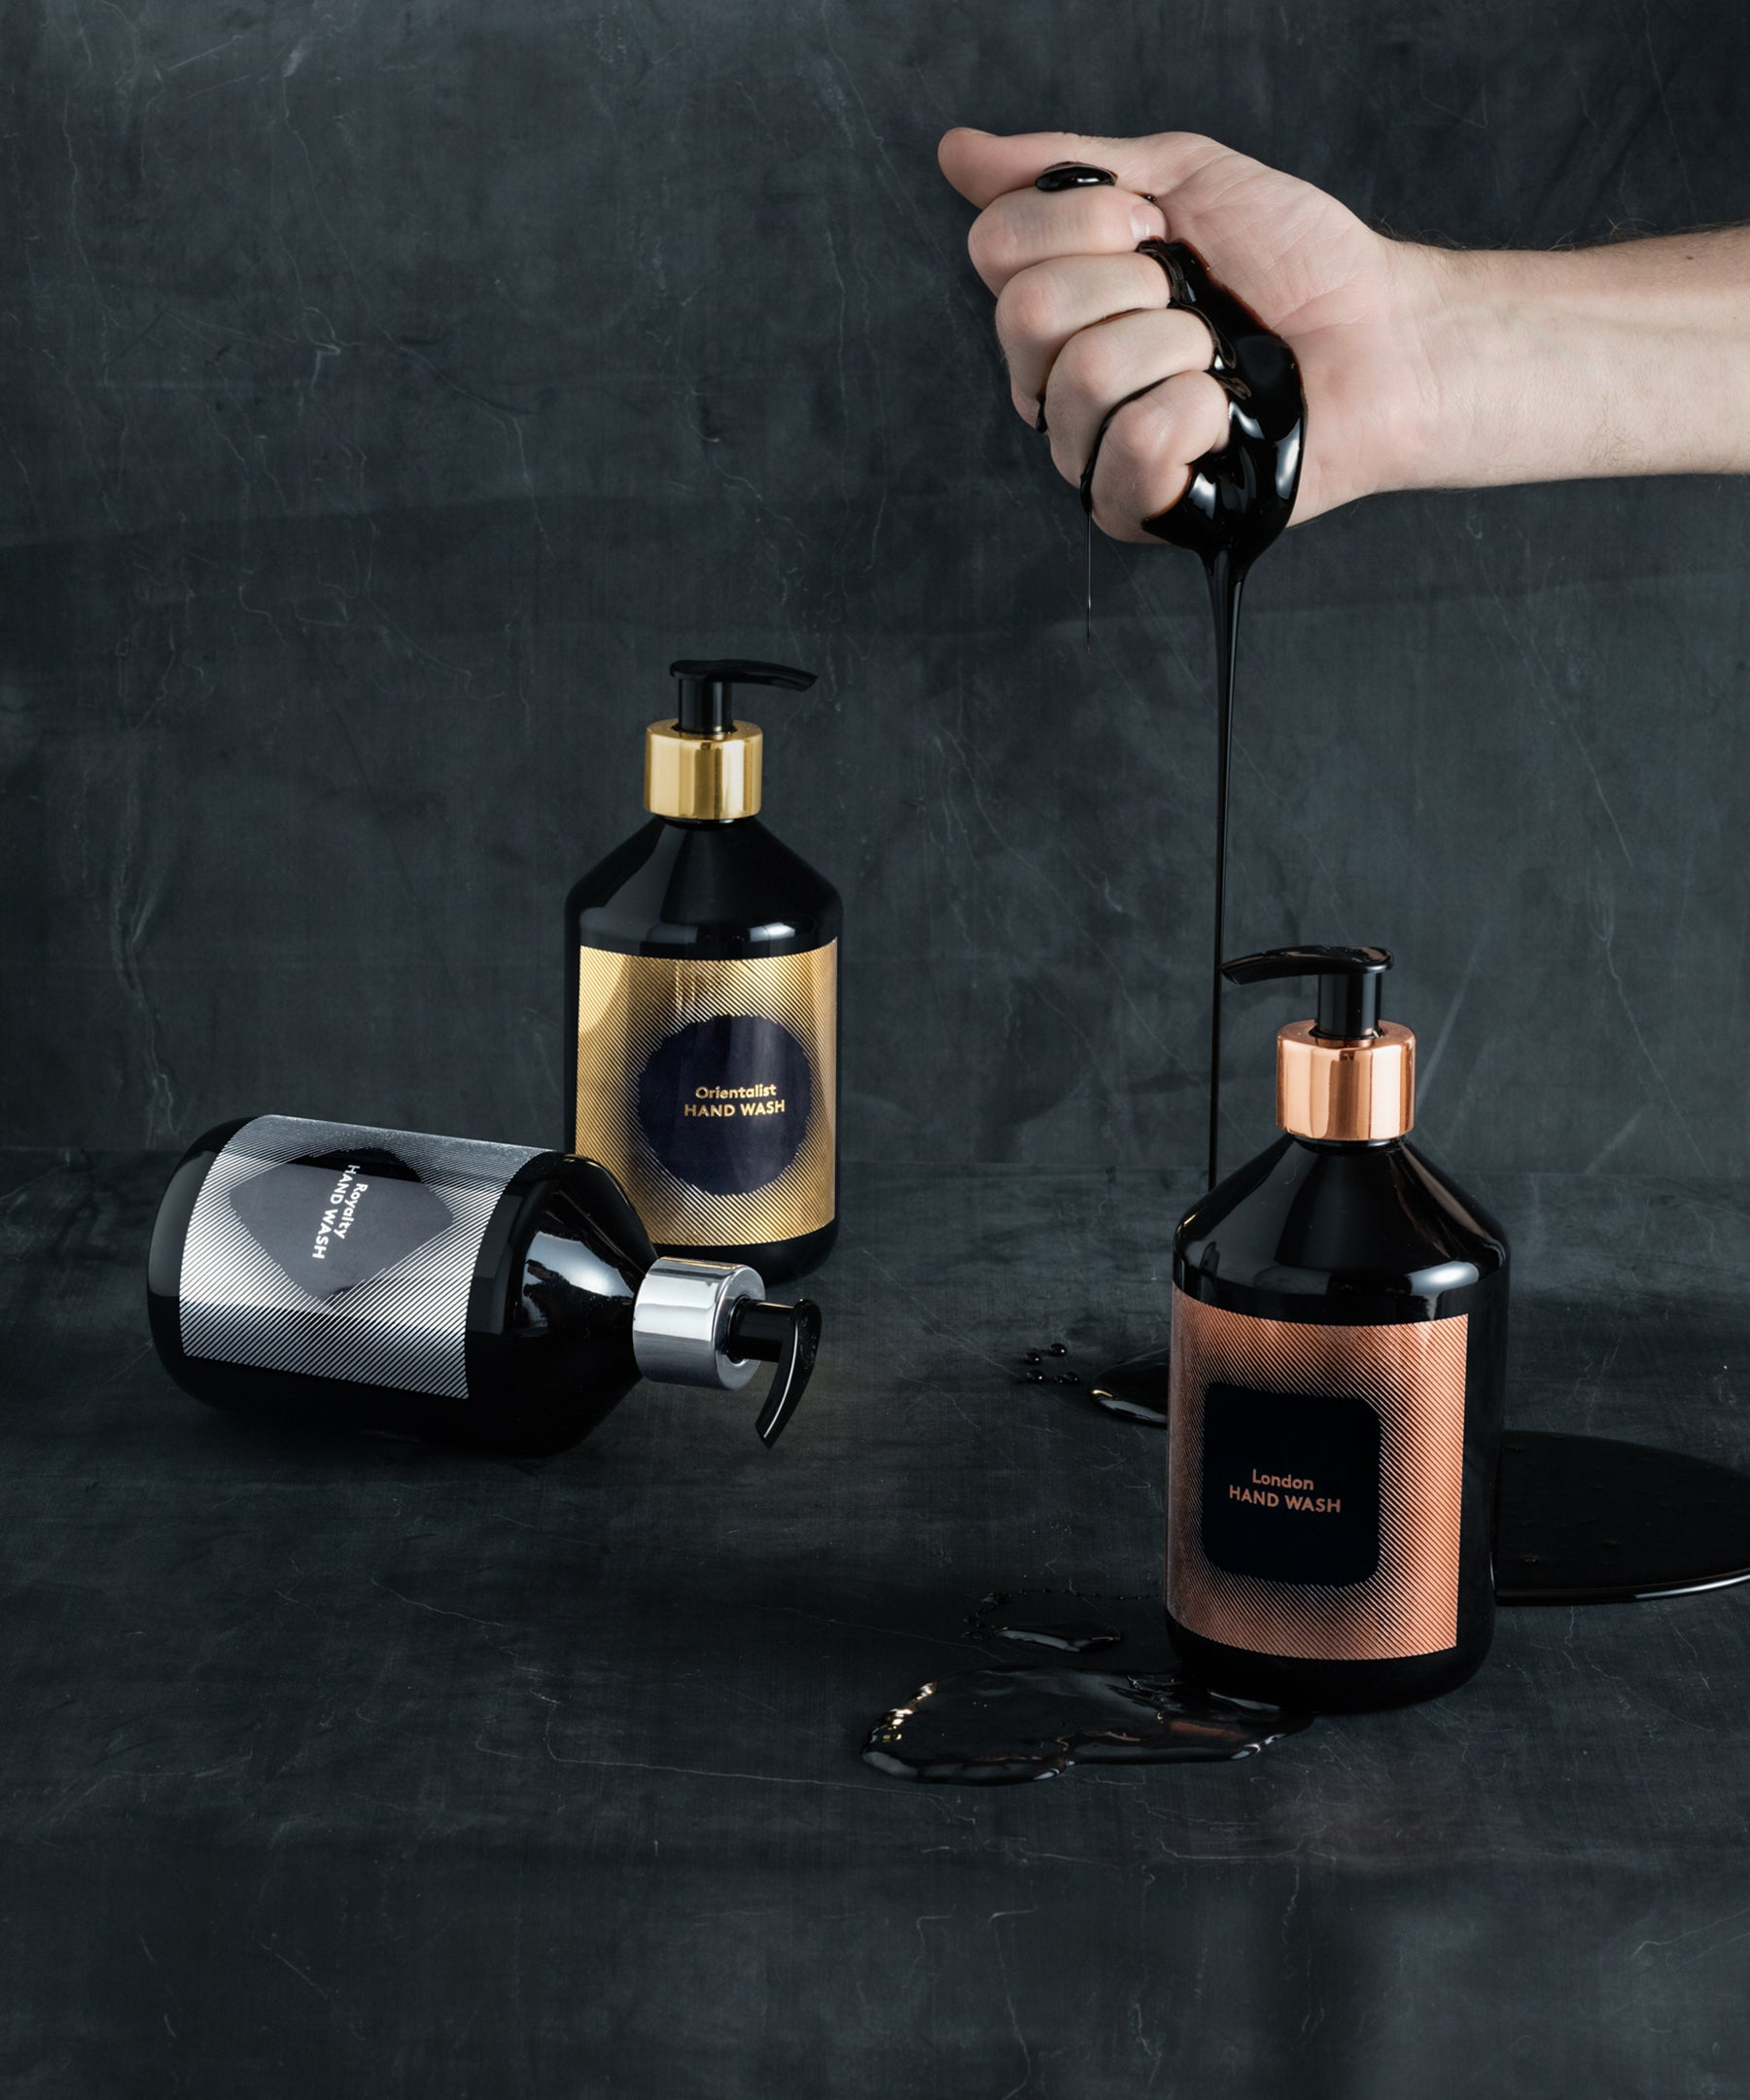 Eclectic London Hand Wash by Tom Dixon